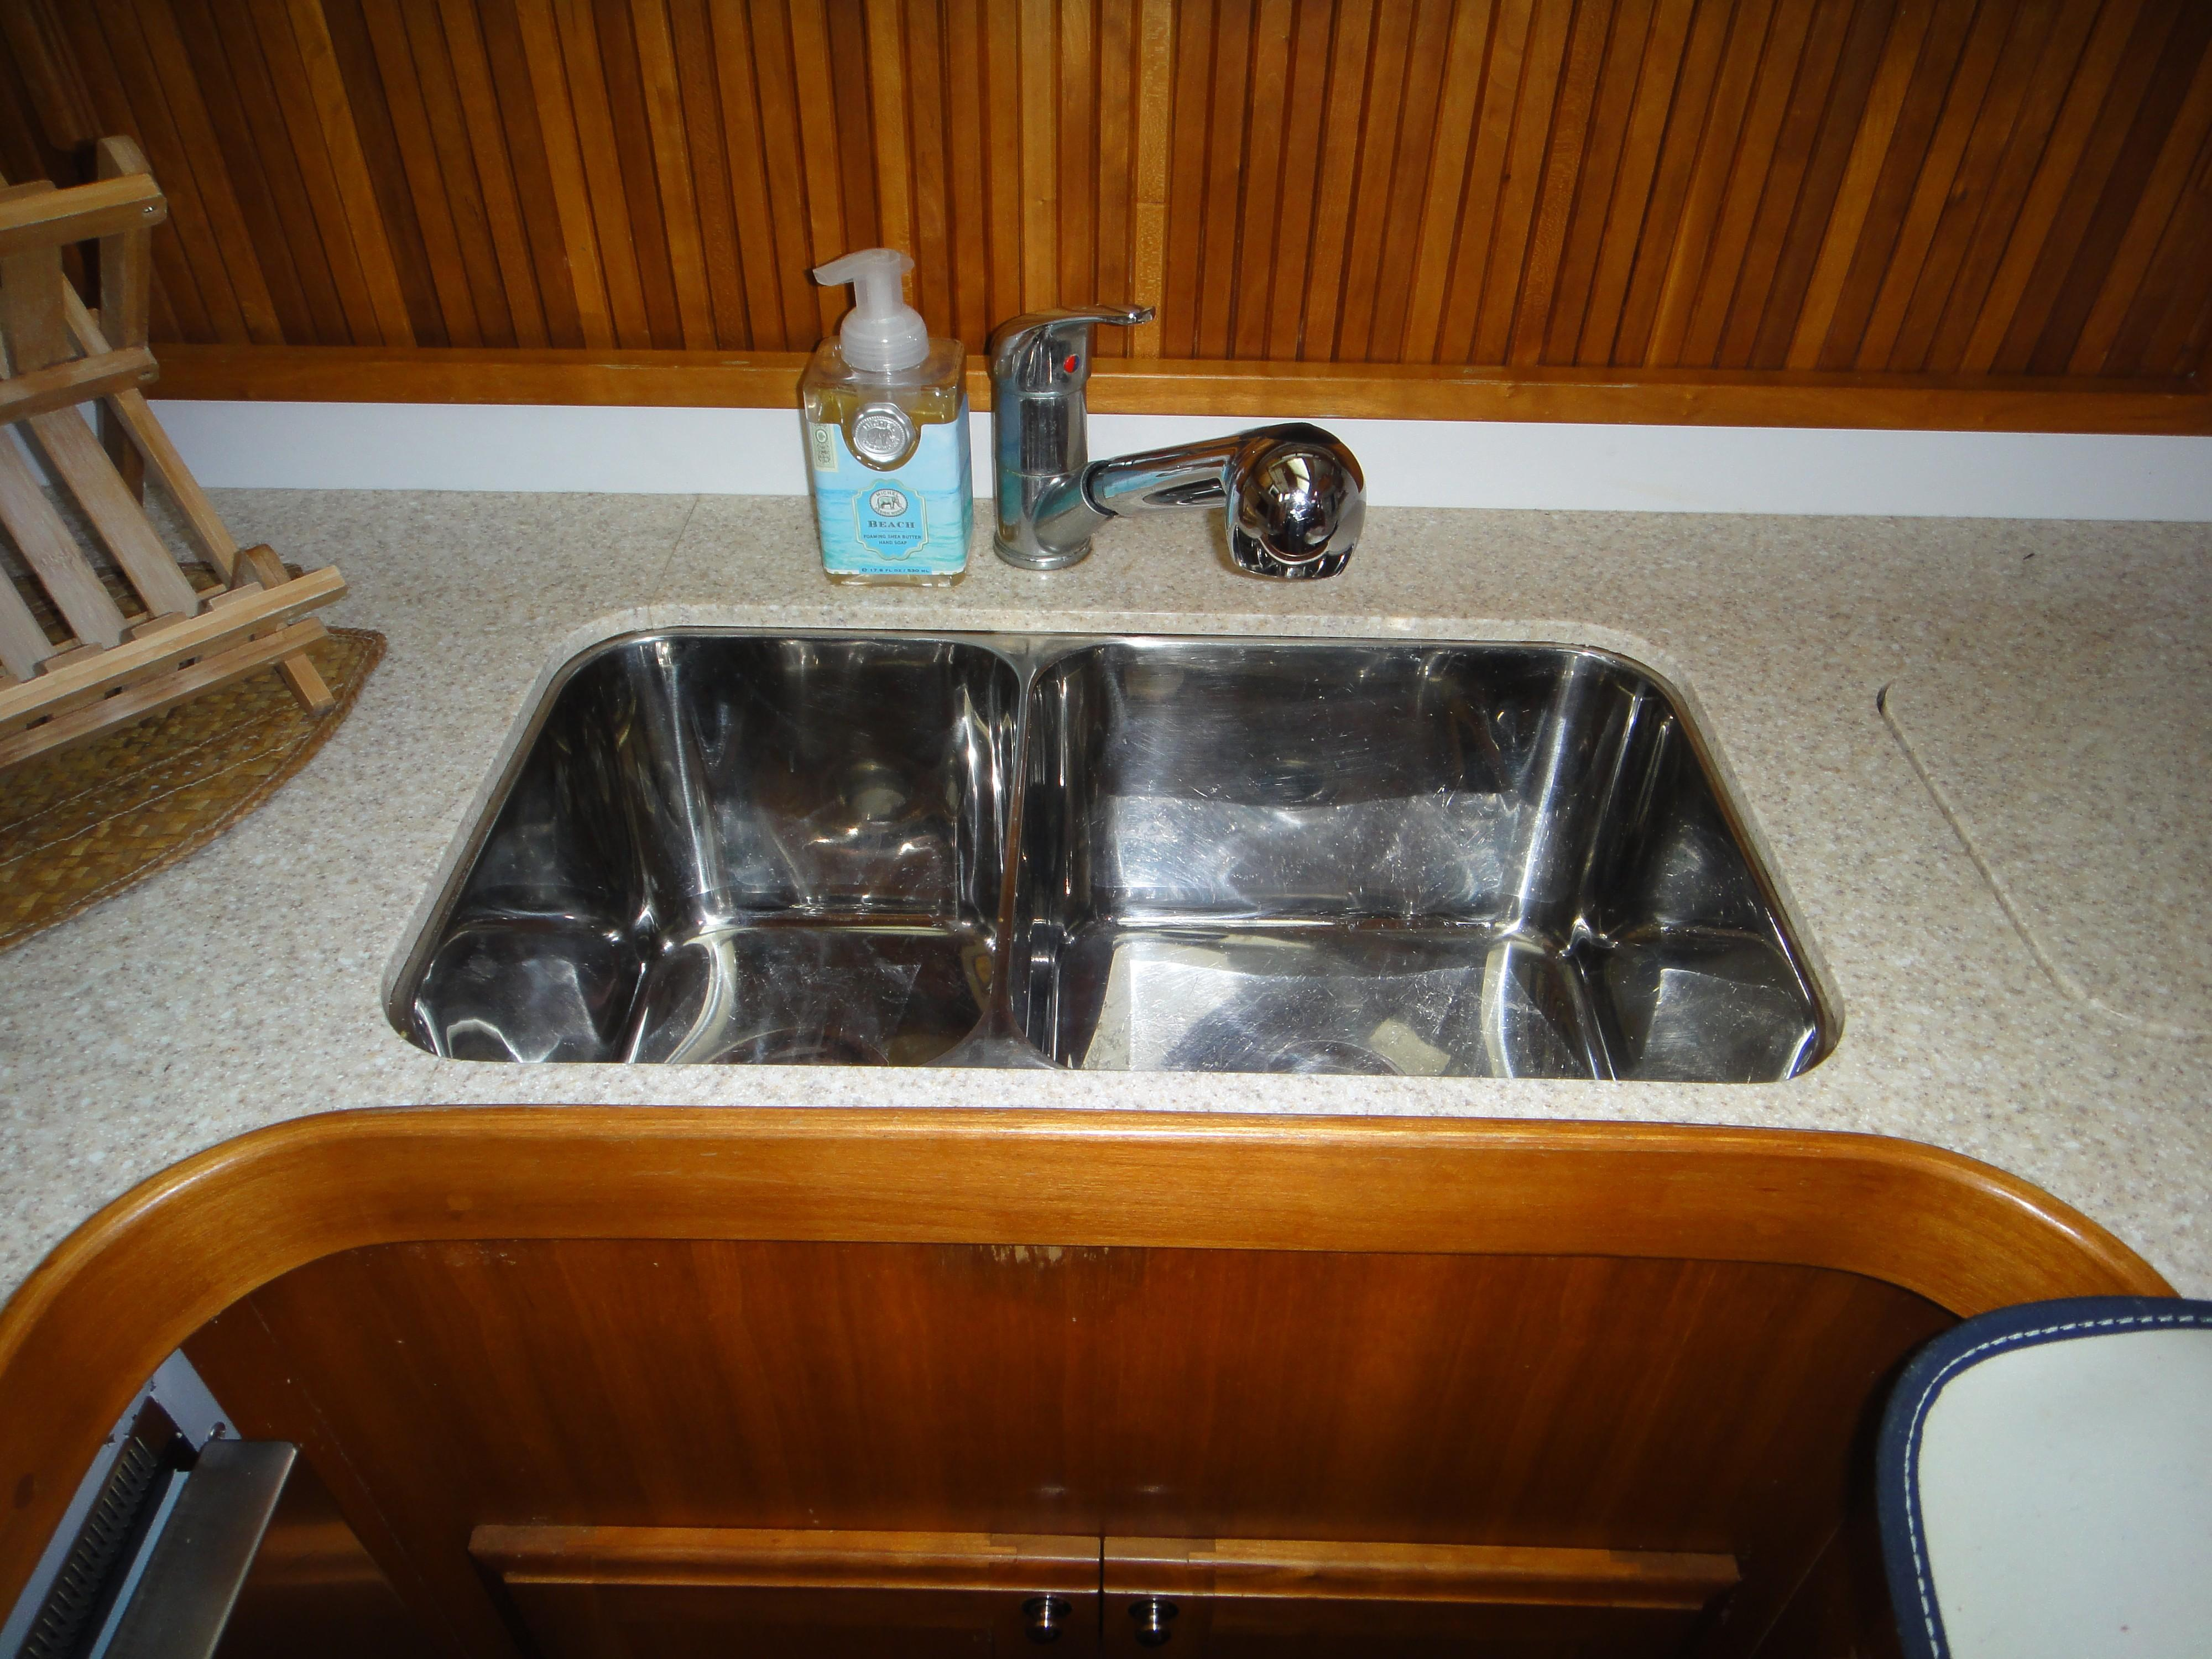 Stainless Steel Sink in Galley